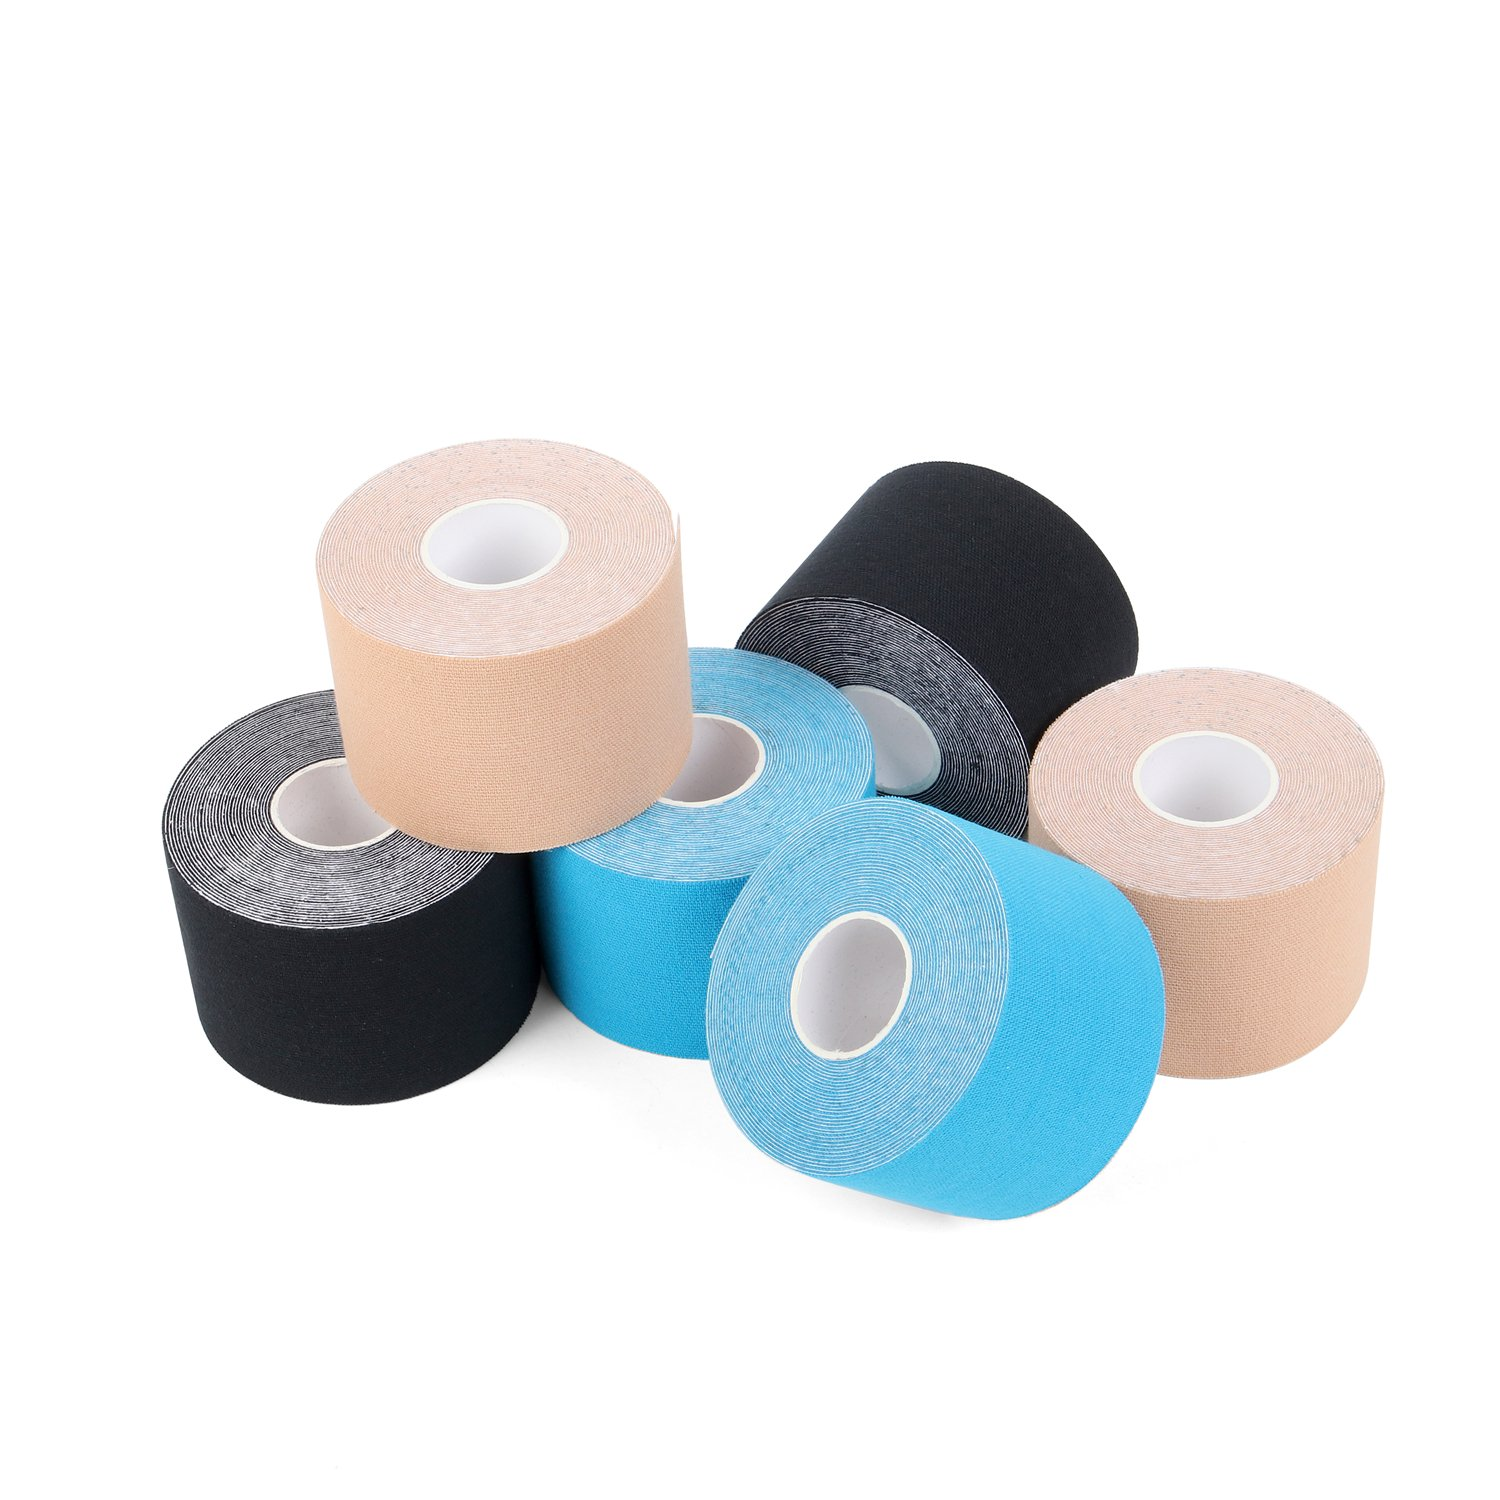 Pain Relief Elastic Sports Tape for Athletic Sports Recovery and Physio Therapy 6 Rolls Pack Superbe Kinesiology Tape 2 Inch x 16.4 feet